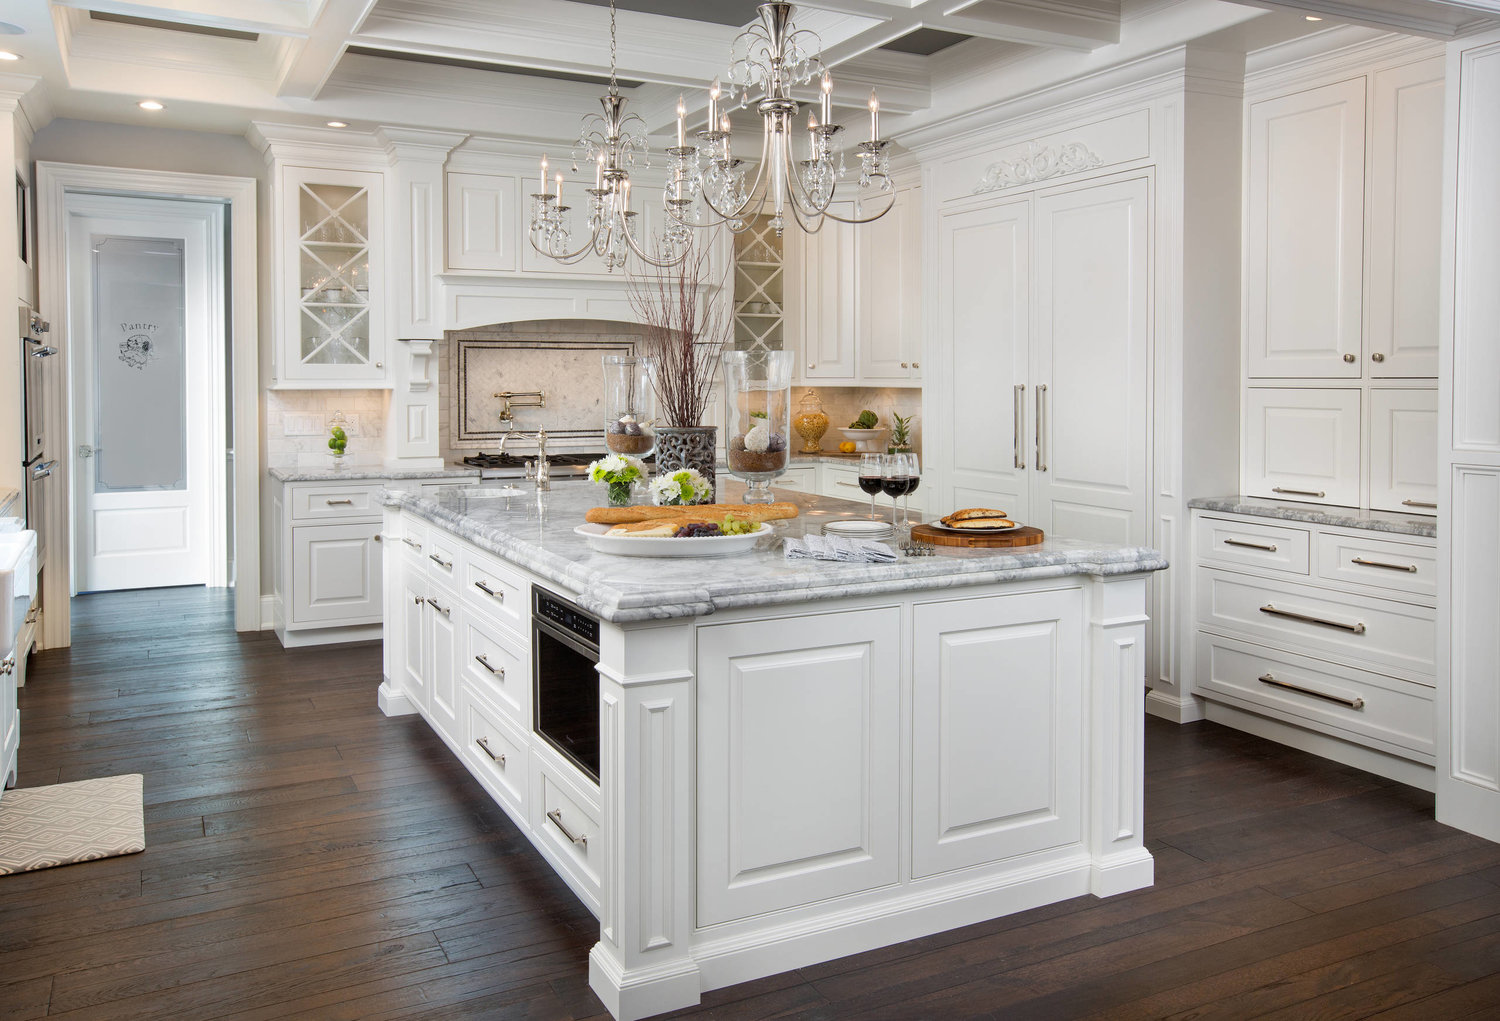 Dream Kitchen All Pro General Contracting Remodeling